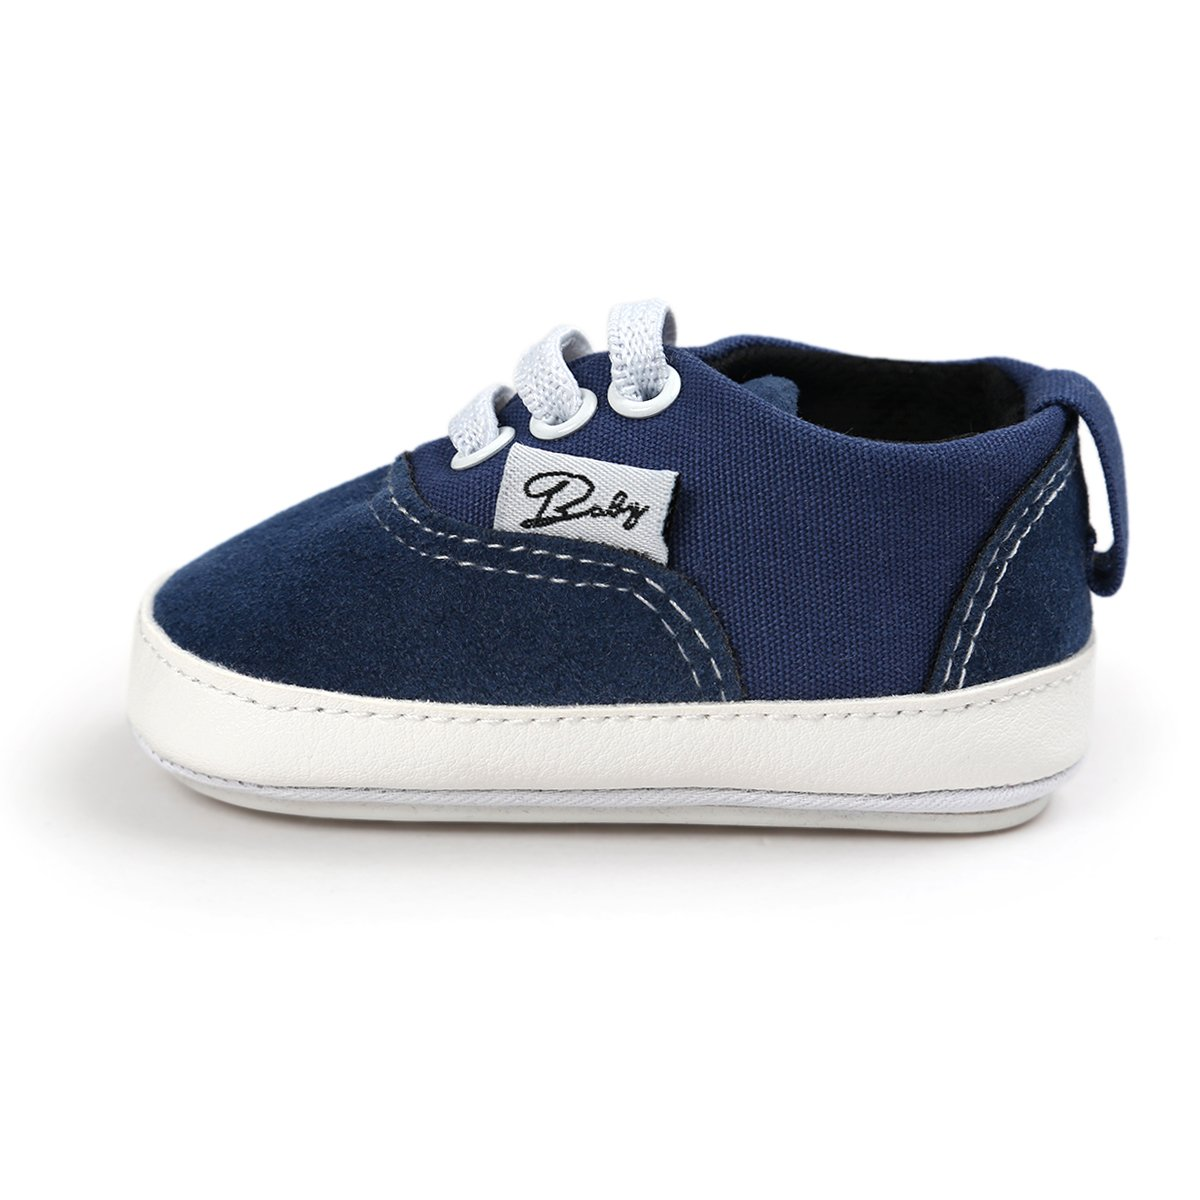 Itaar Baby Canvas Sneakers Non-slip Rubber Sole Slip-on Shoes with Elastic Lace for Infant Toddler Boys and Girls First Walking